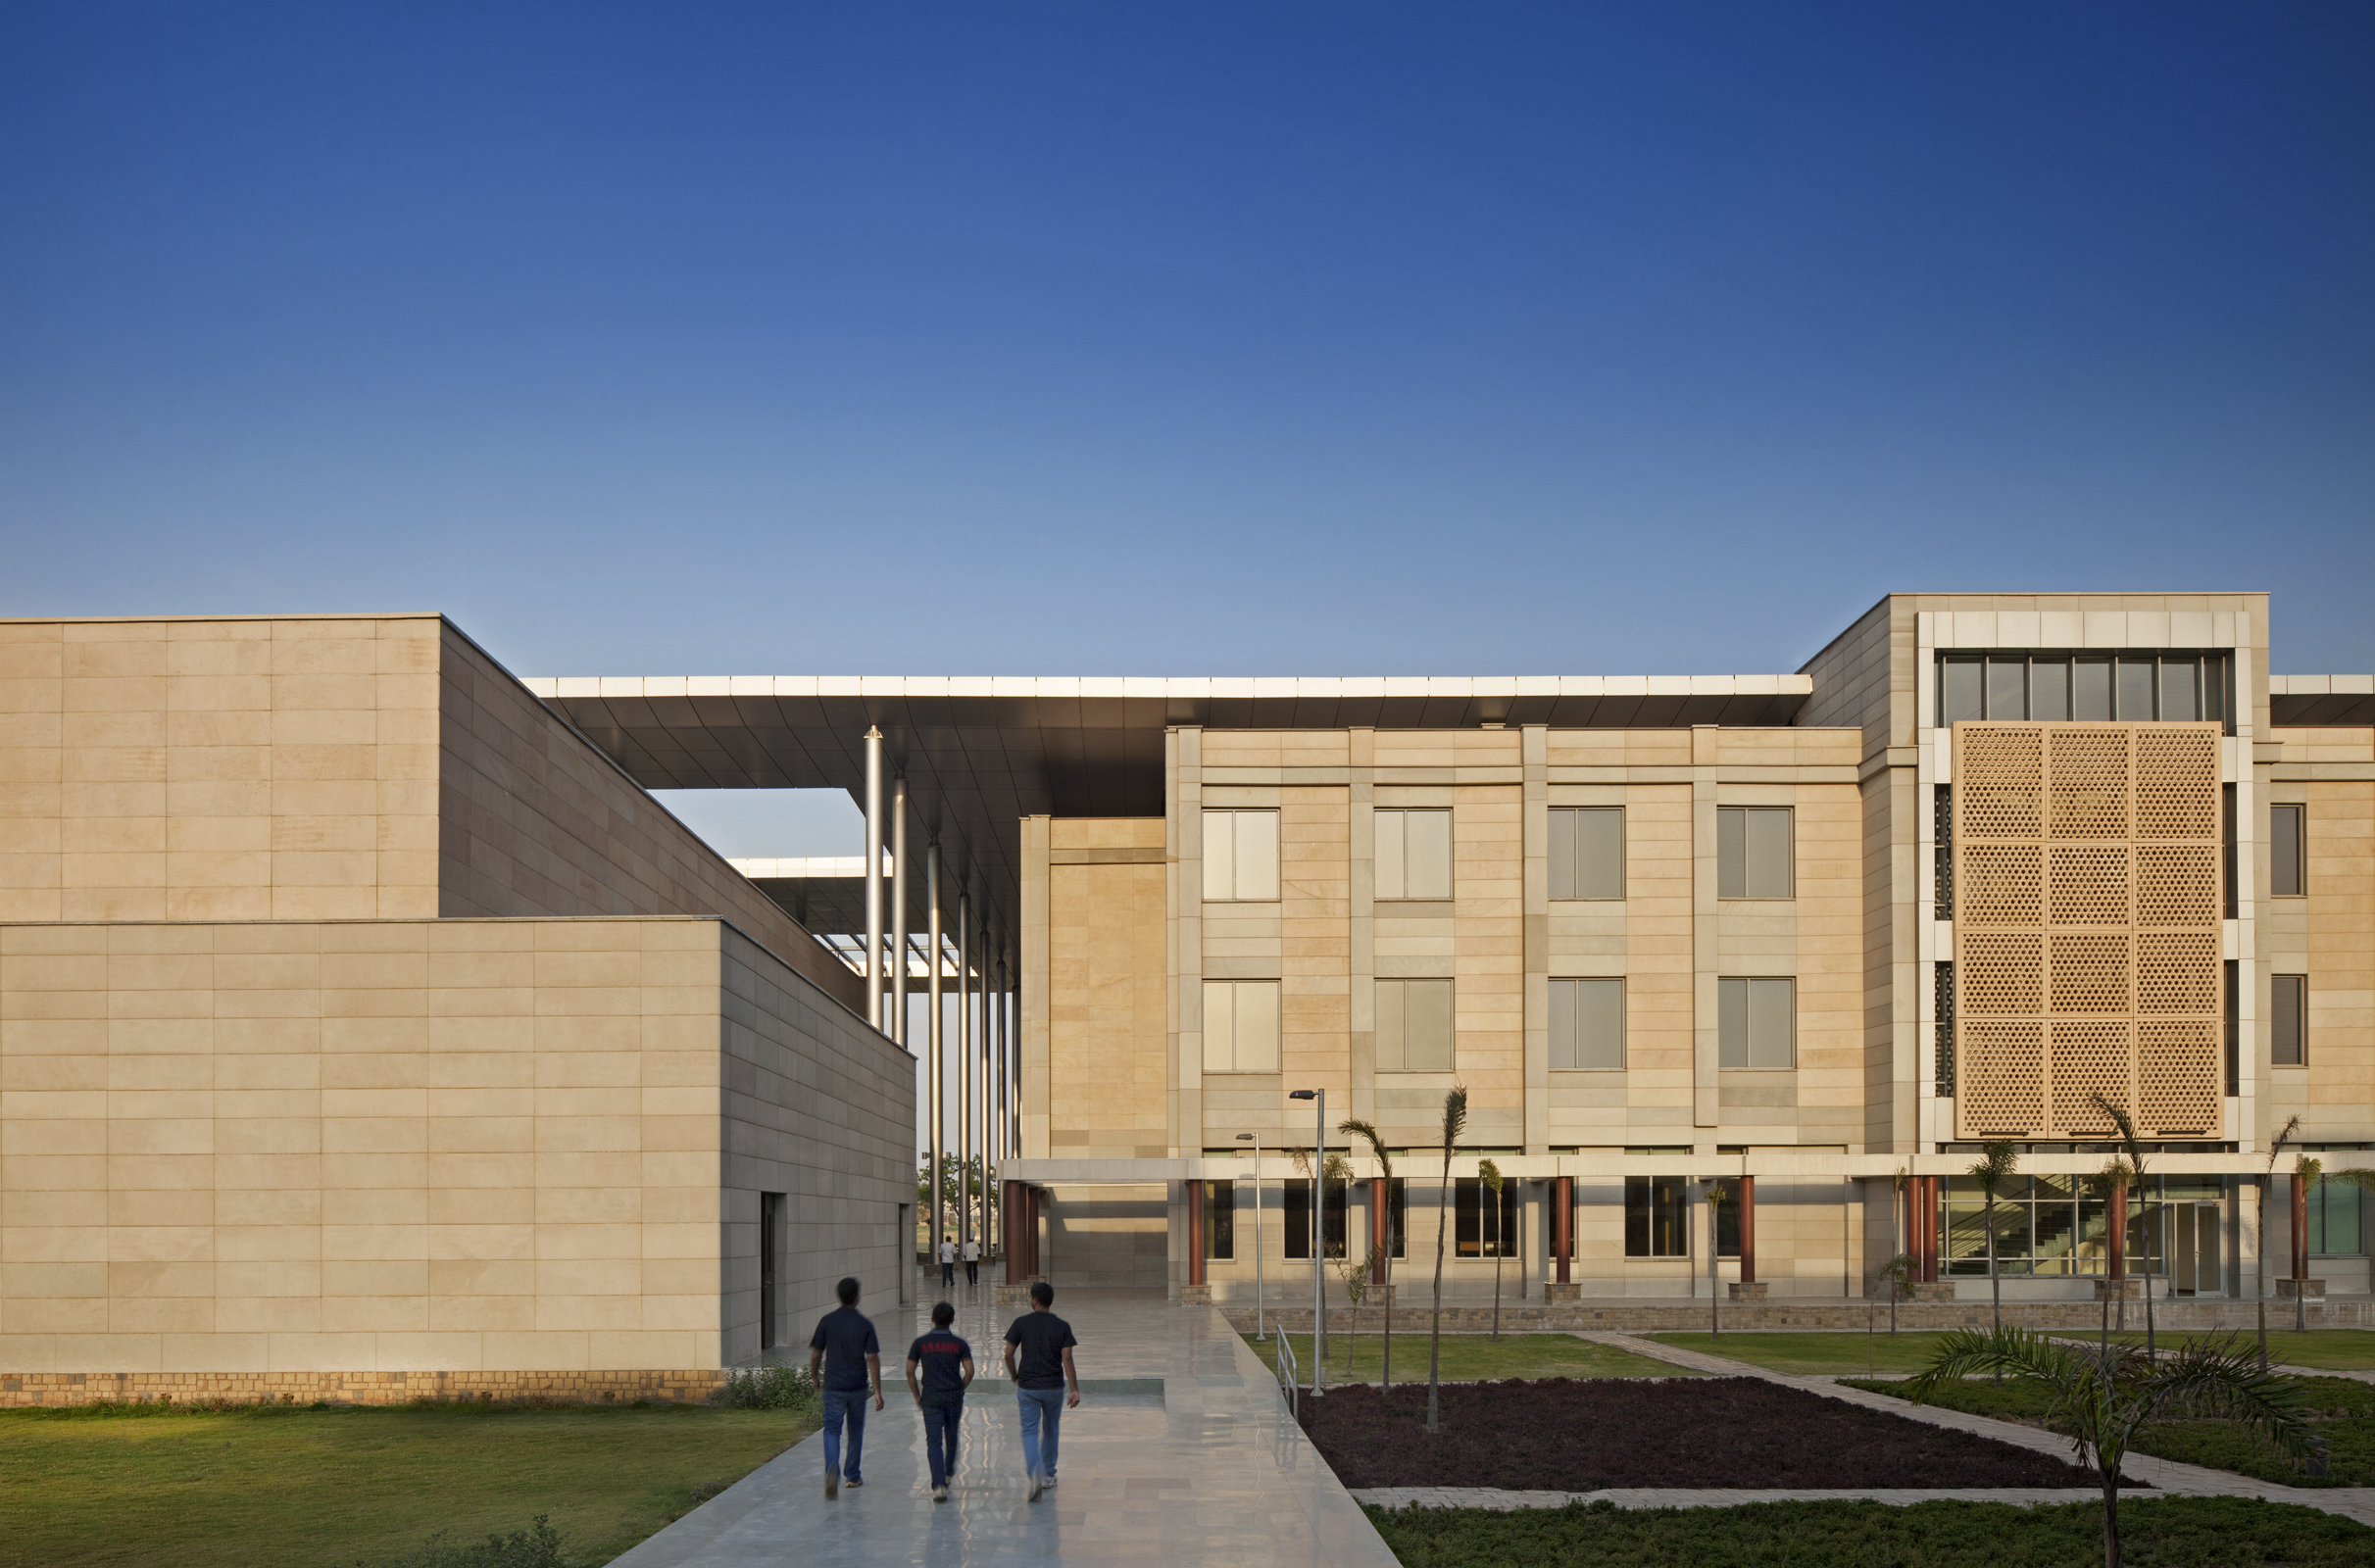 ISB+-+New+Mohali_34200.00.0_Ext+Academic+Classrooms+and+Auditorium_MR.jpg